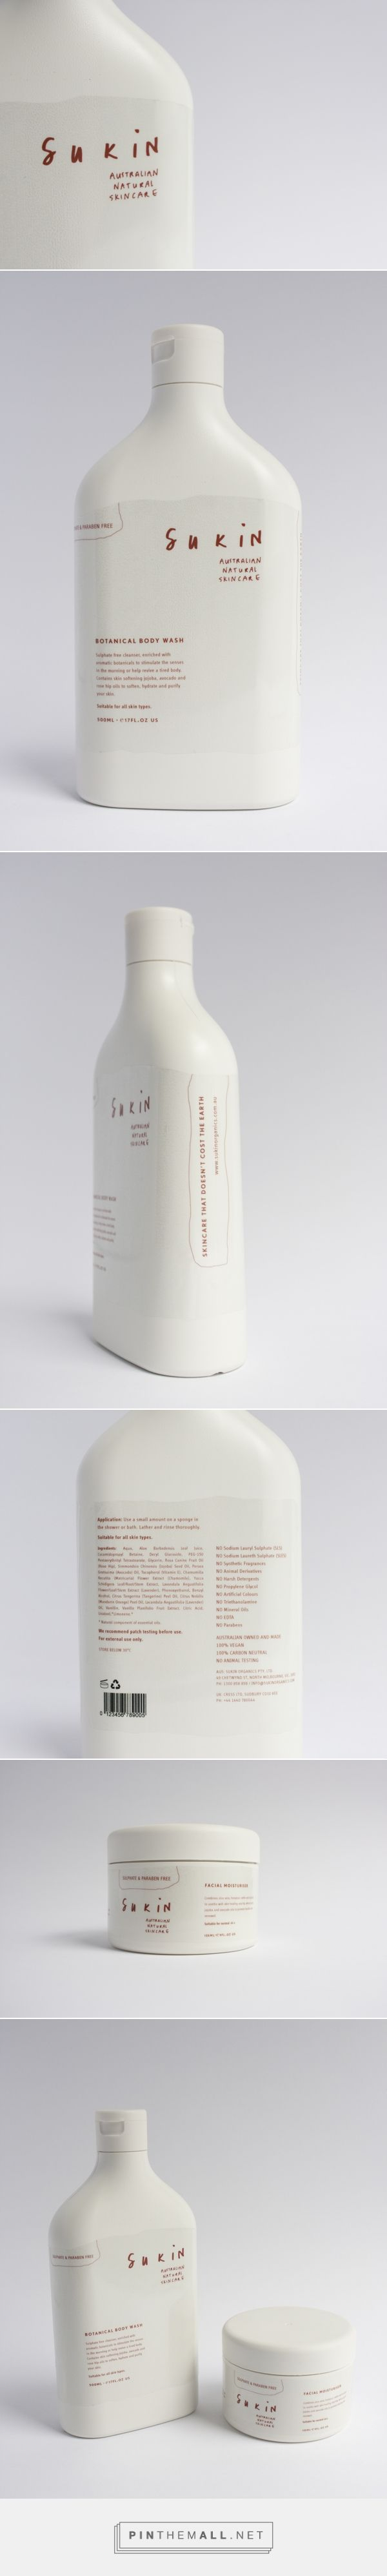 Sukin Skincare is an Australian natural personal care company whose products boast only the best ingredients nature has to offer.   Package Designed by Danielle Fritz